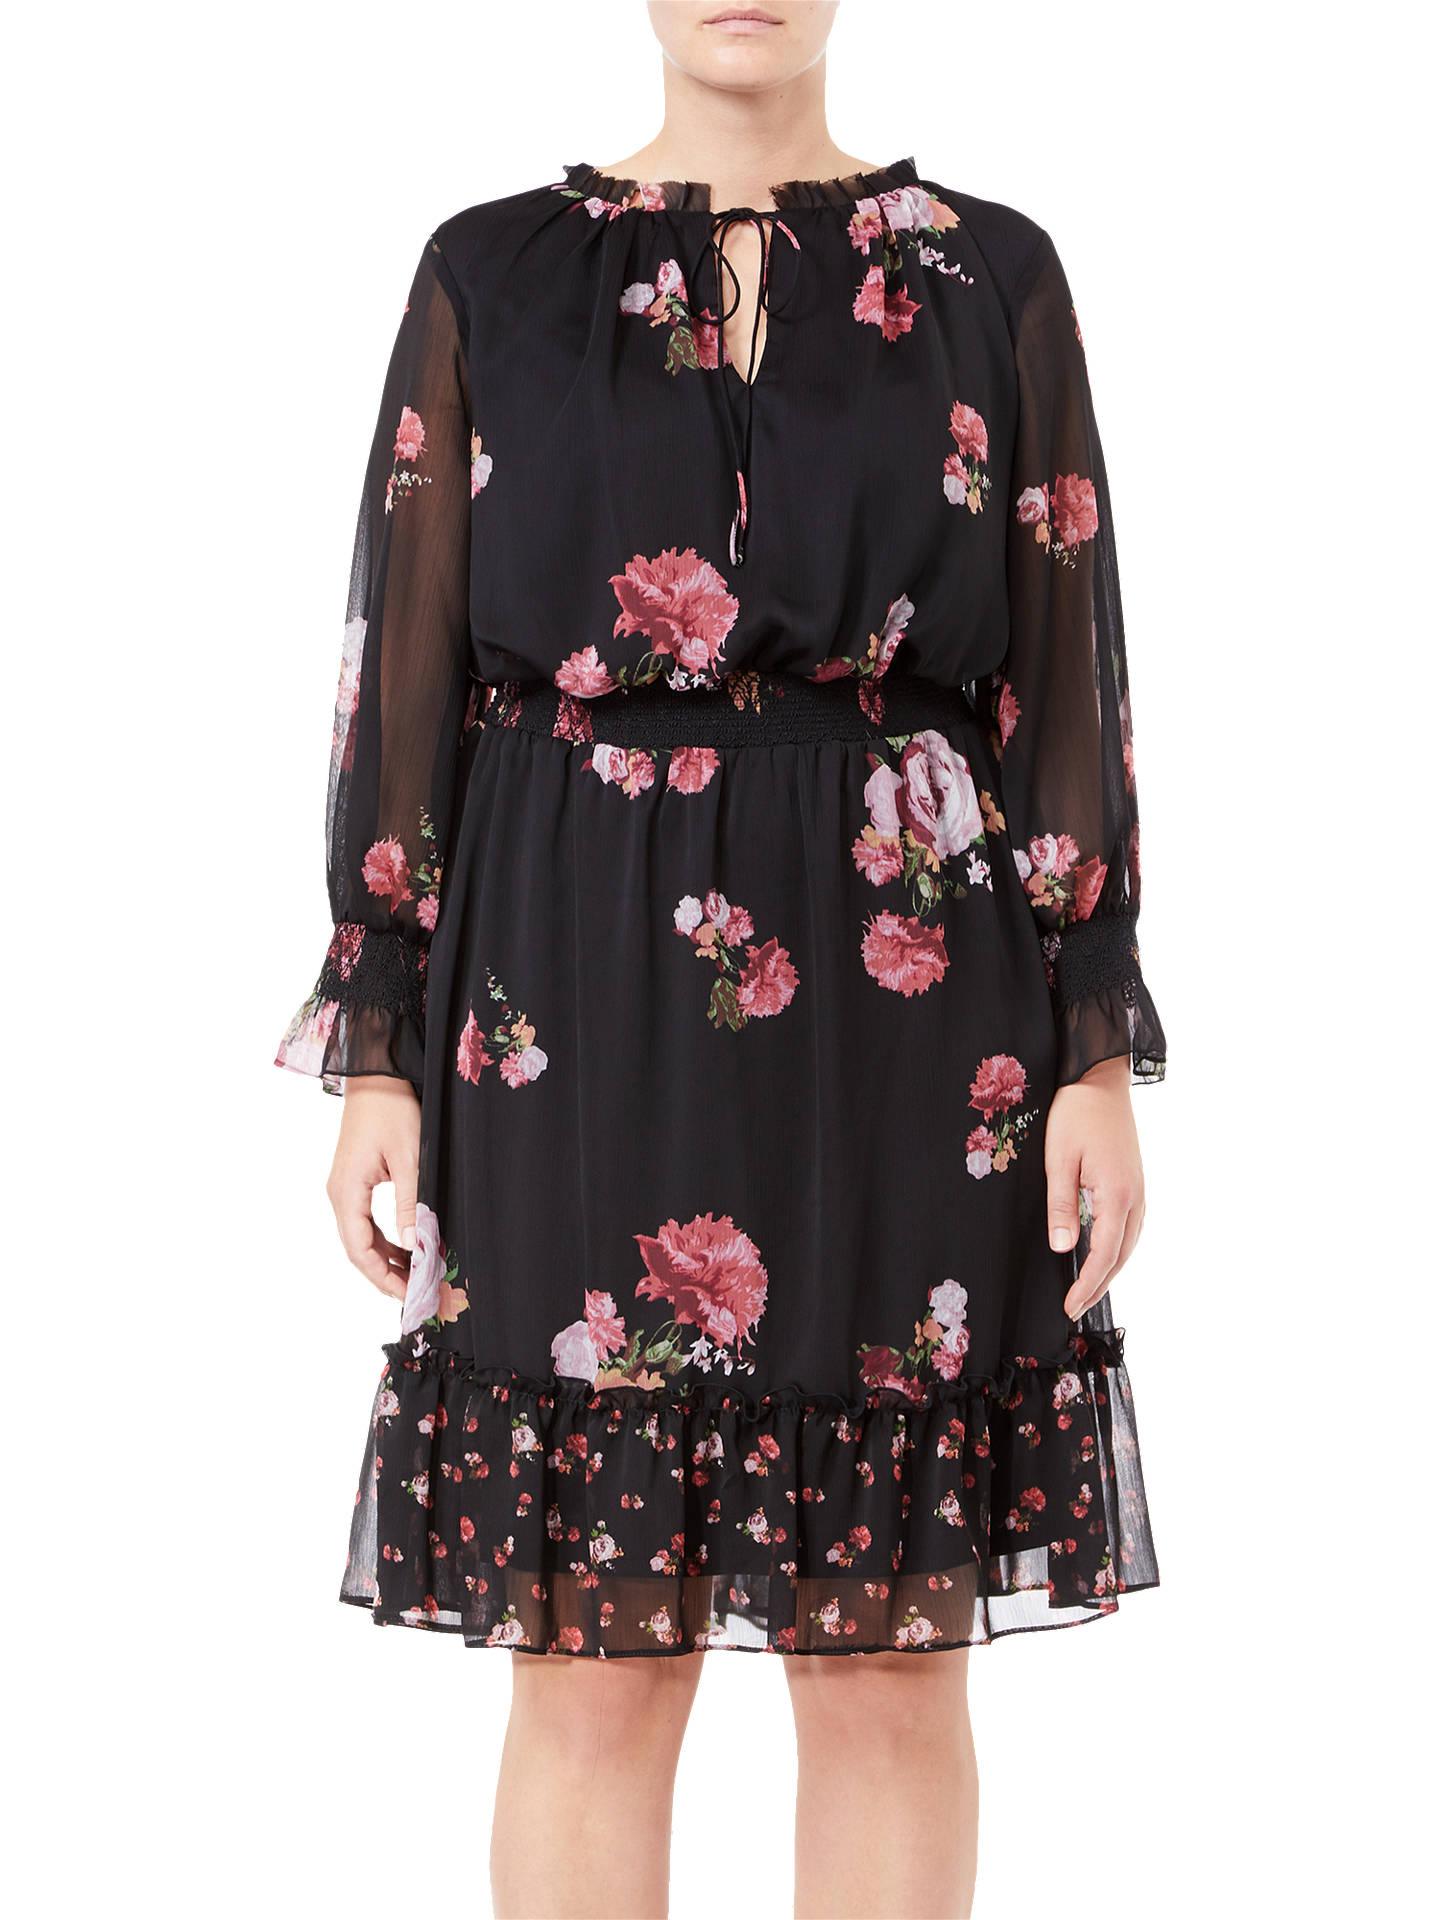 BuyAdrianna Papell Plus Size Loving Floral Dress, Black, 18 Online at johnlewis.com